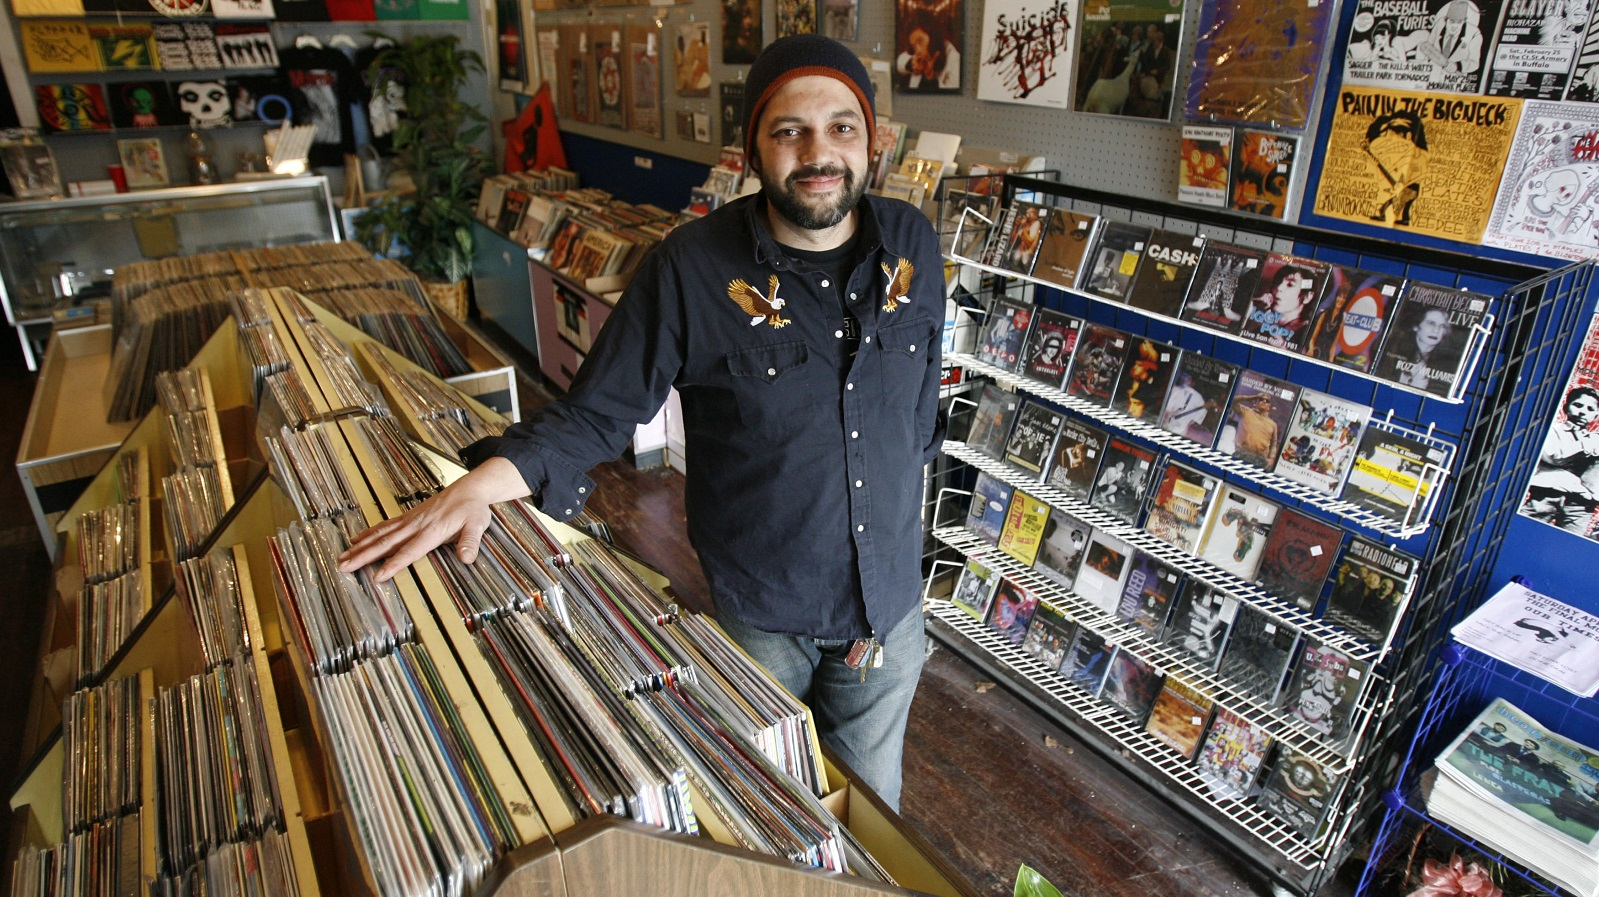 Dave Palumbo, the owner of Spiral Scratch Records, will try to find a new location. He's pictured, above, at his old Delaware Avenue store in 2009. (Sharon Cantillon/Buffalo News file photo)